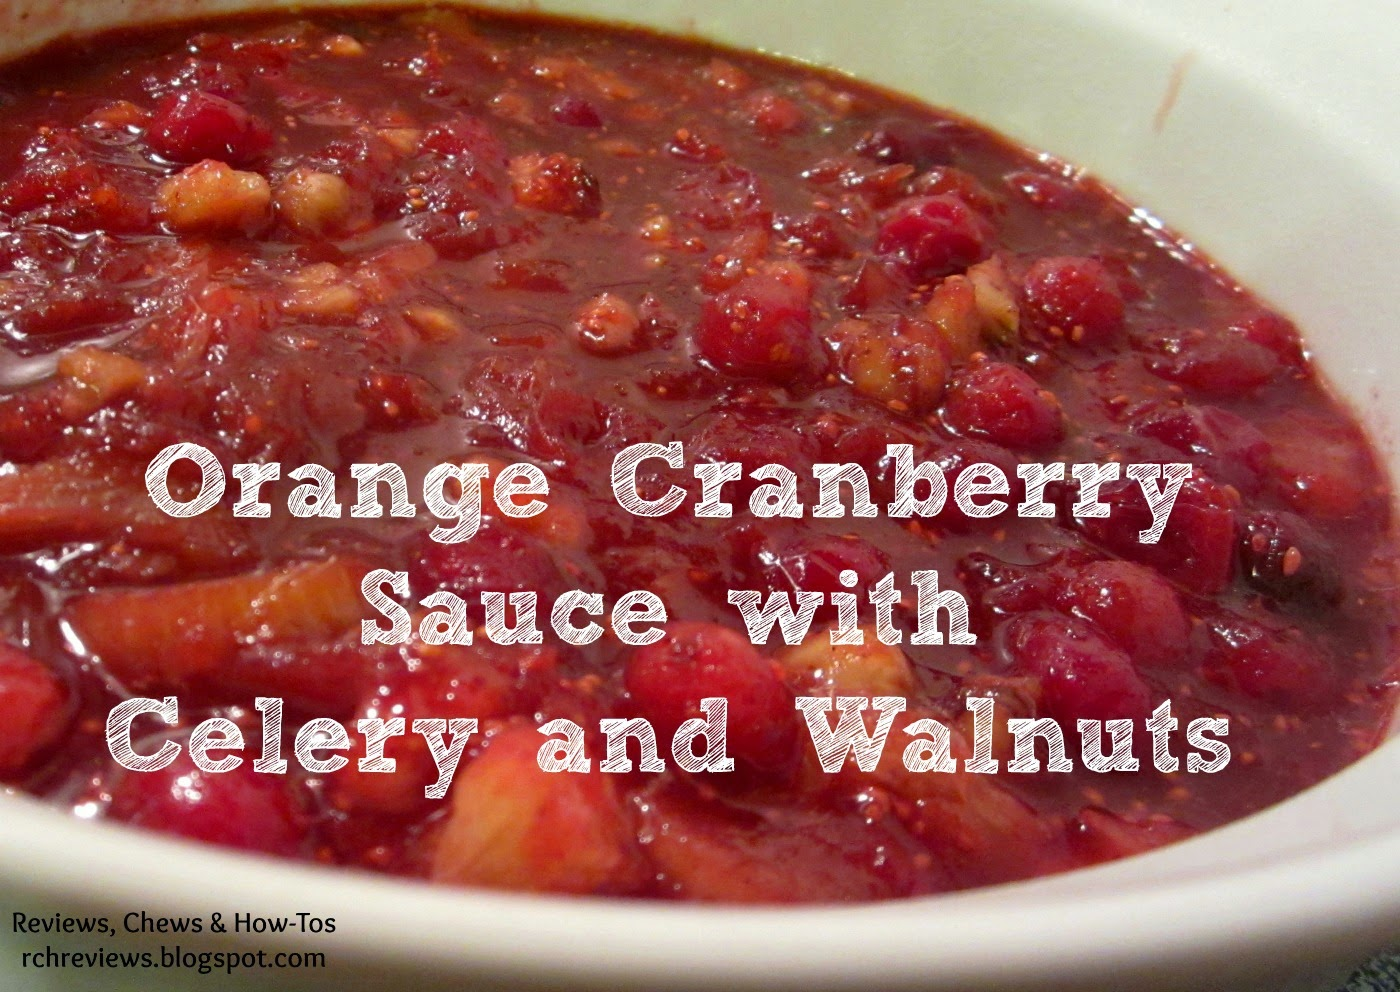 Reviews, Chews & How-Tos: Orange Cranberry Sauce with Celery & Walnuts